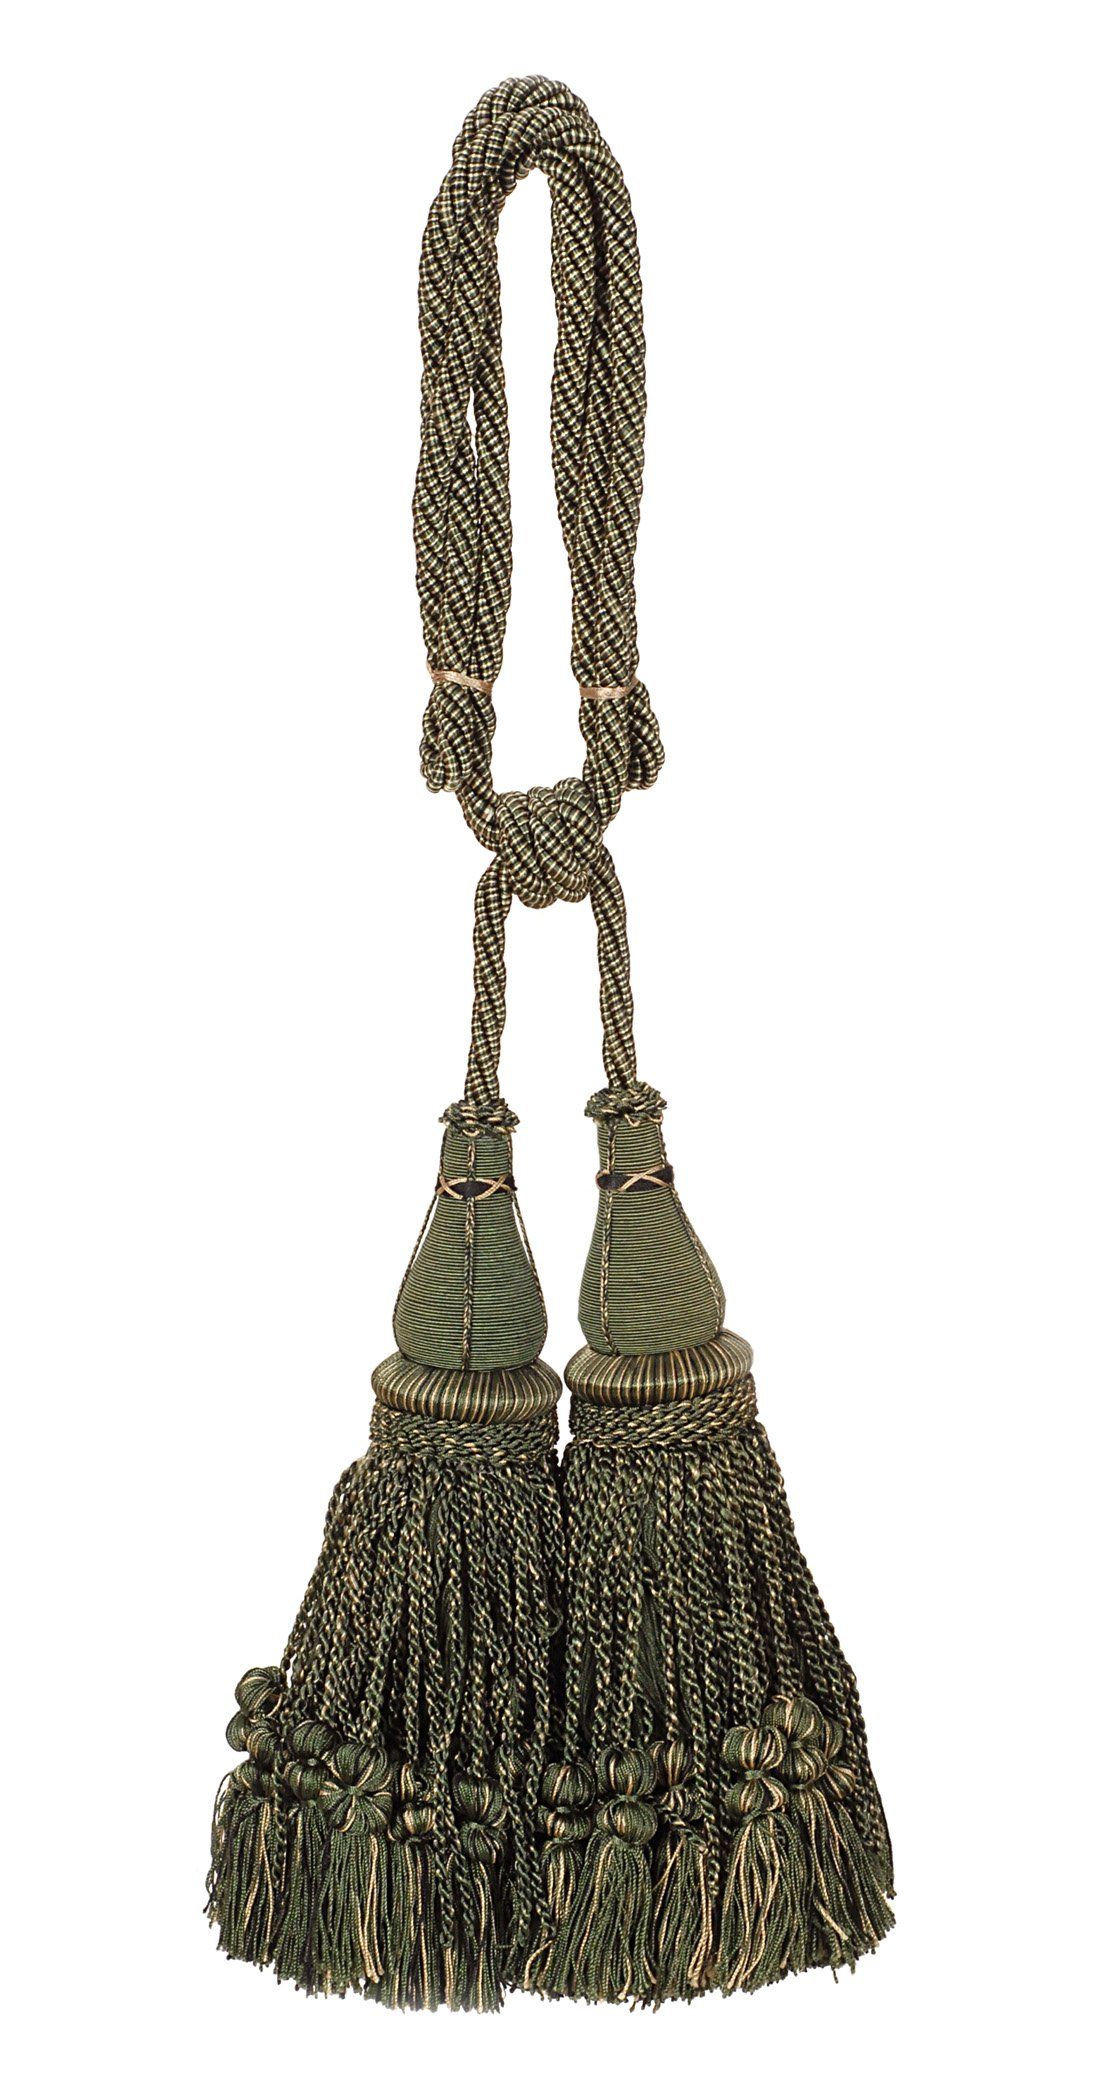 India House 79592 Jhalar Tieback with 10-Inch Double Tassel and 36-Inch Cord, Olive